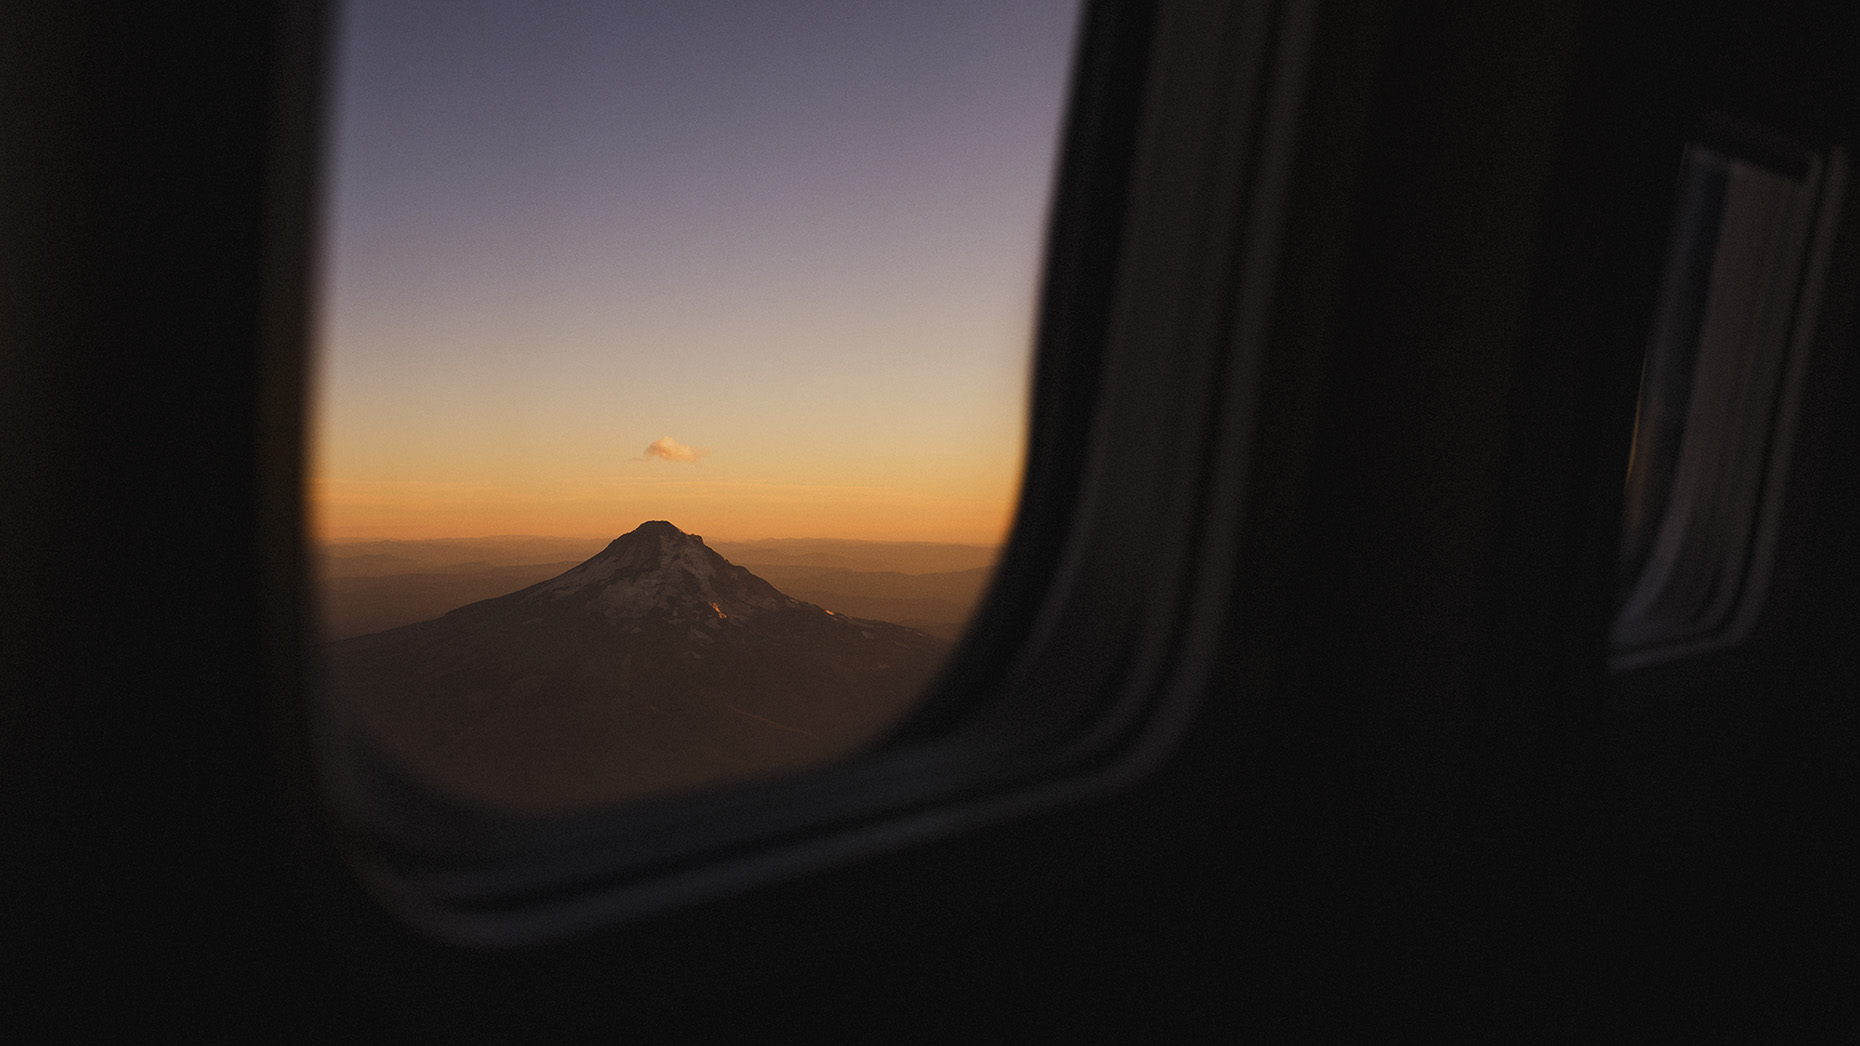 MT_HOOD_FROM_PLANE_L1004425_B_ONE_CLOUD_ONLY_16x9